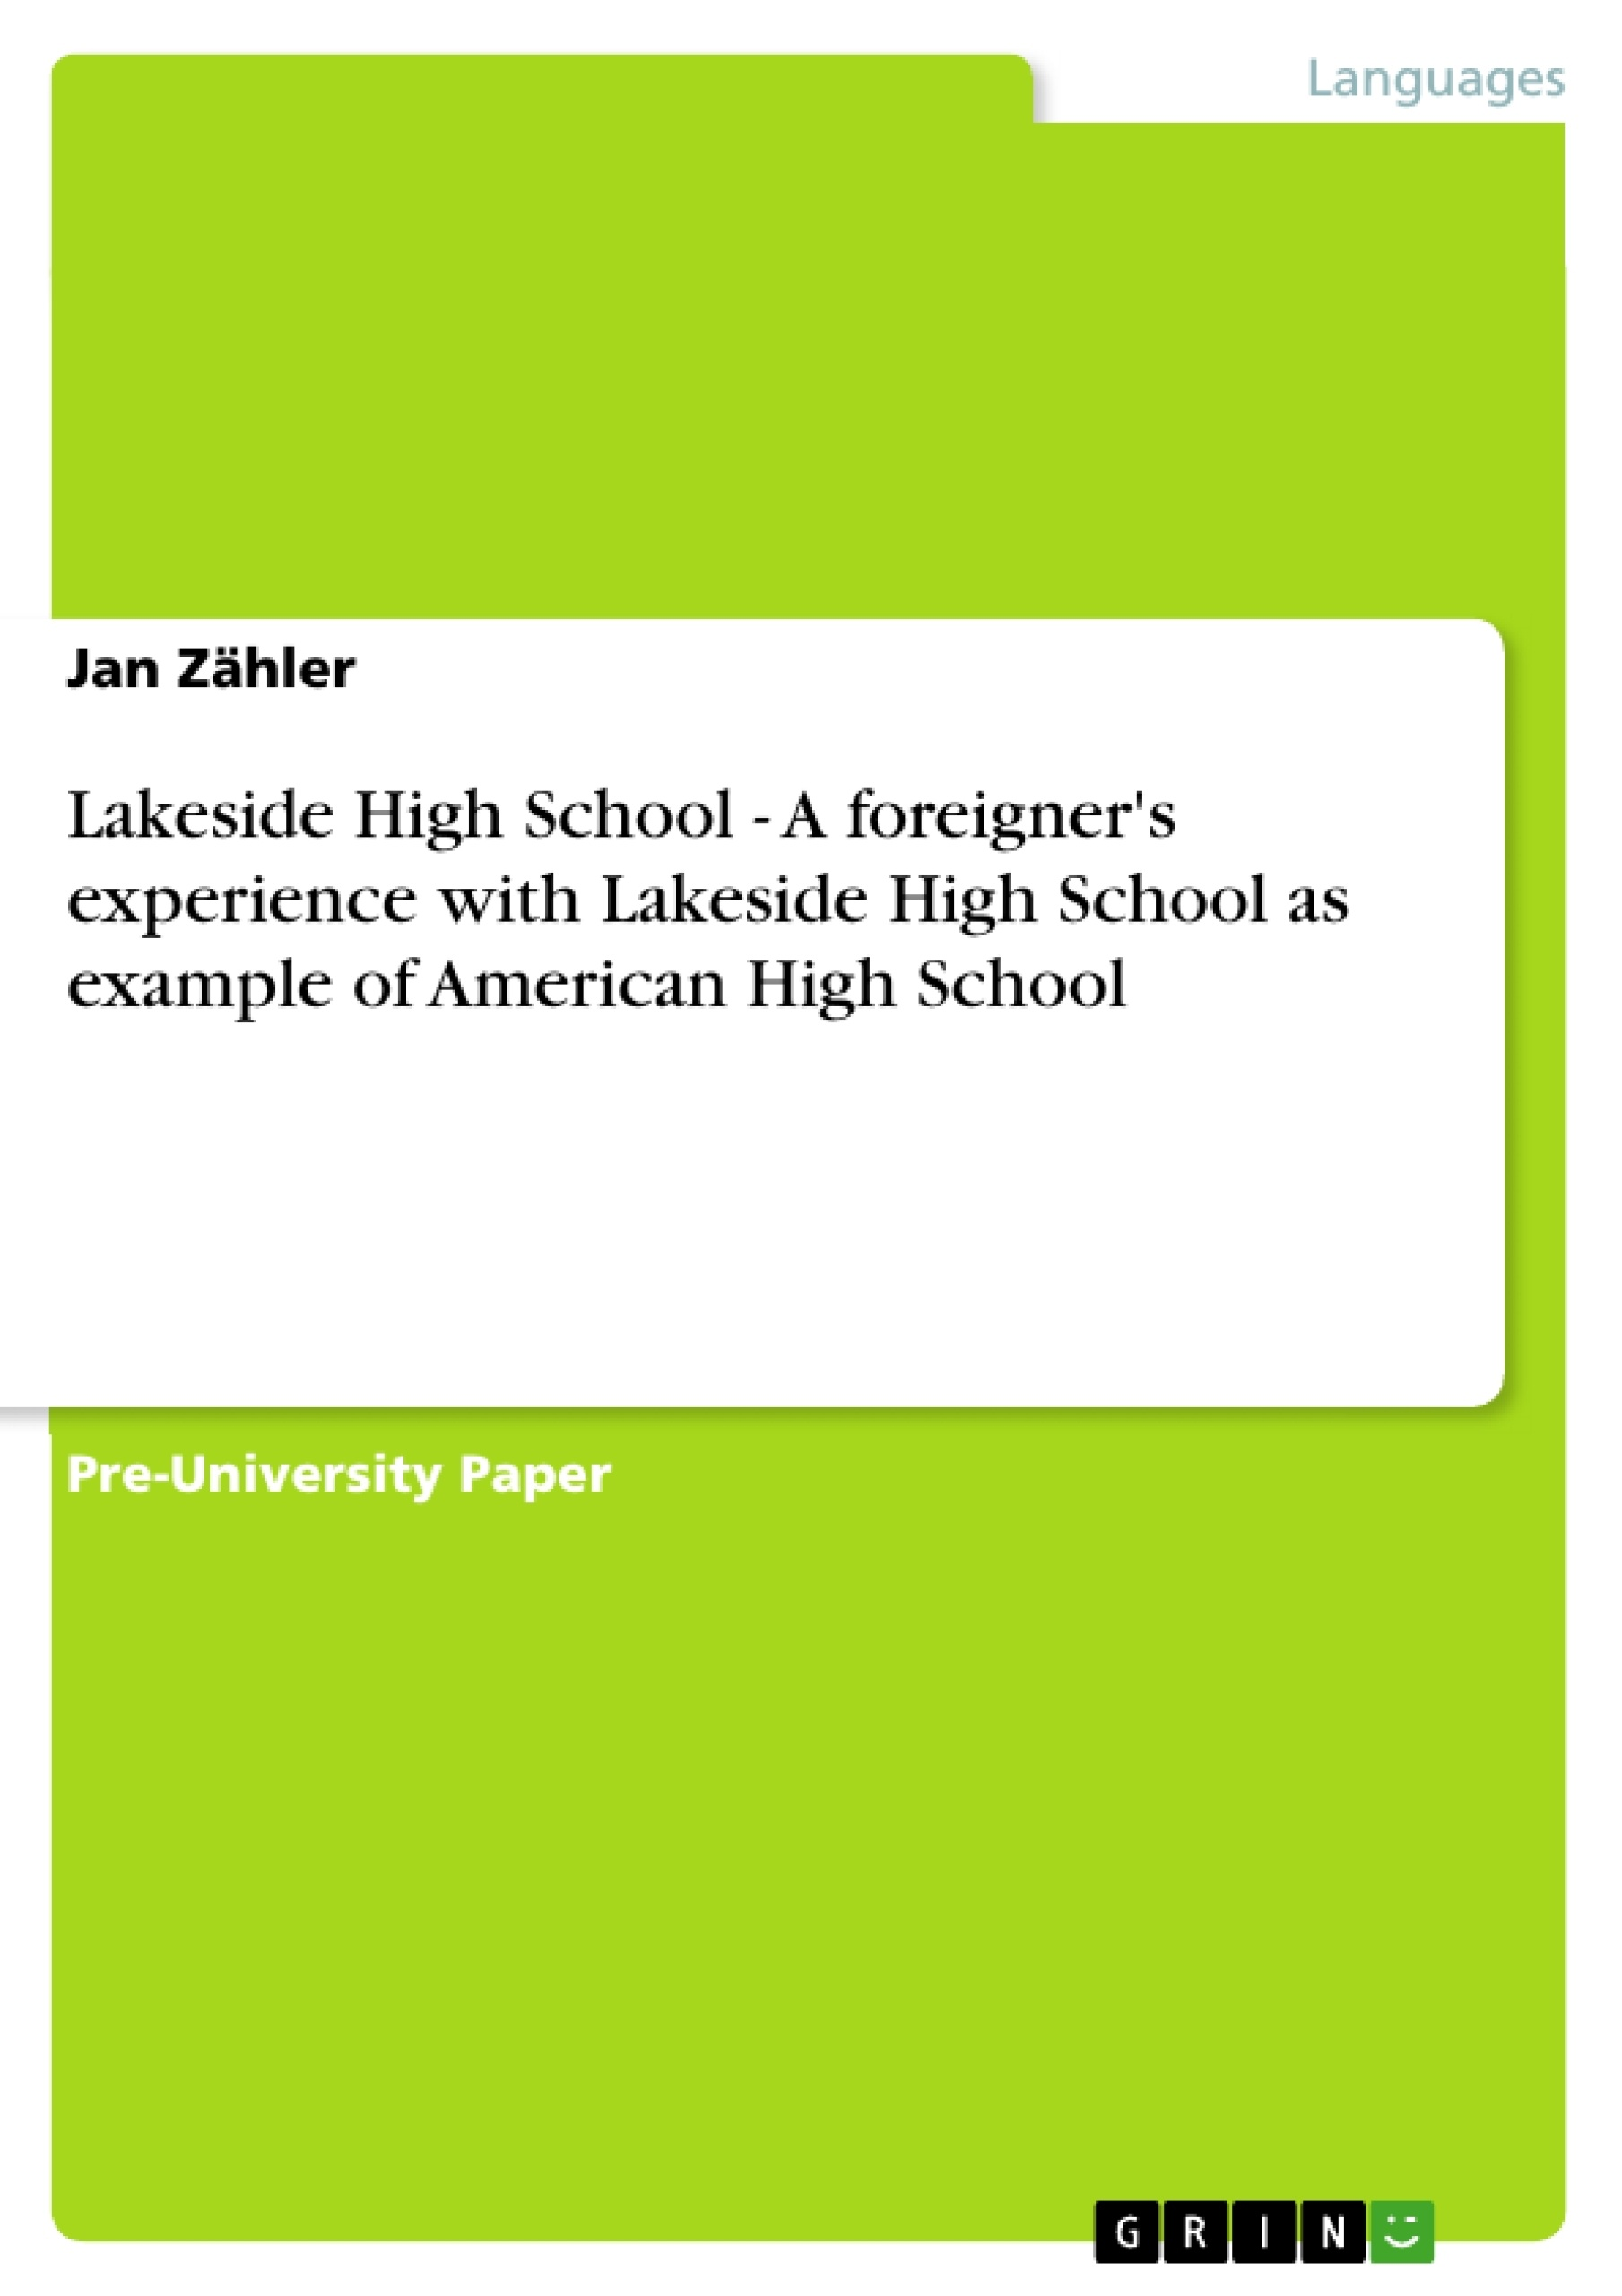 Title: Lakeside High School -  A foreigner's experience with Lakeside High School as example of American High School